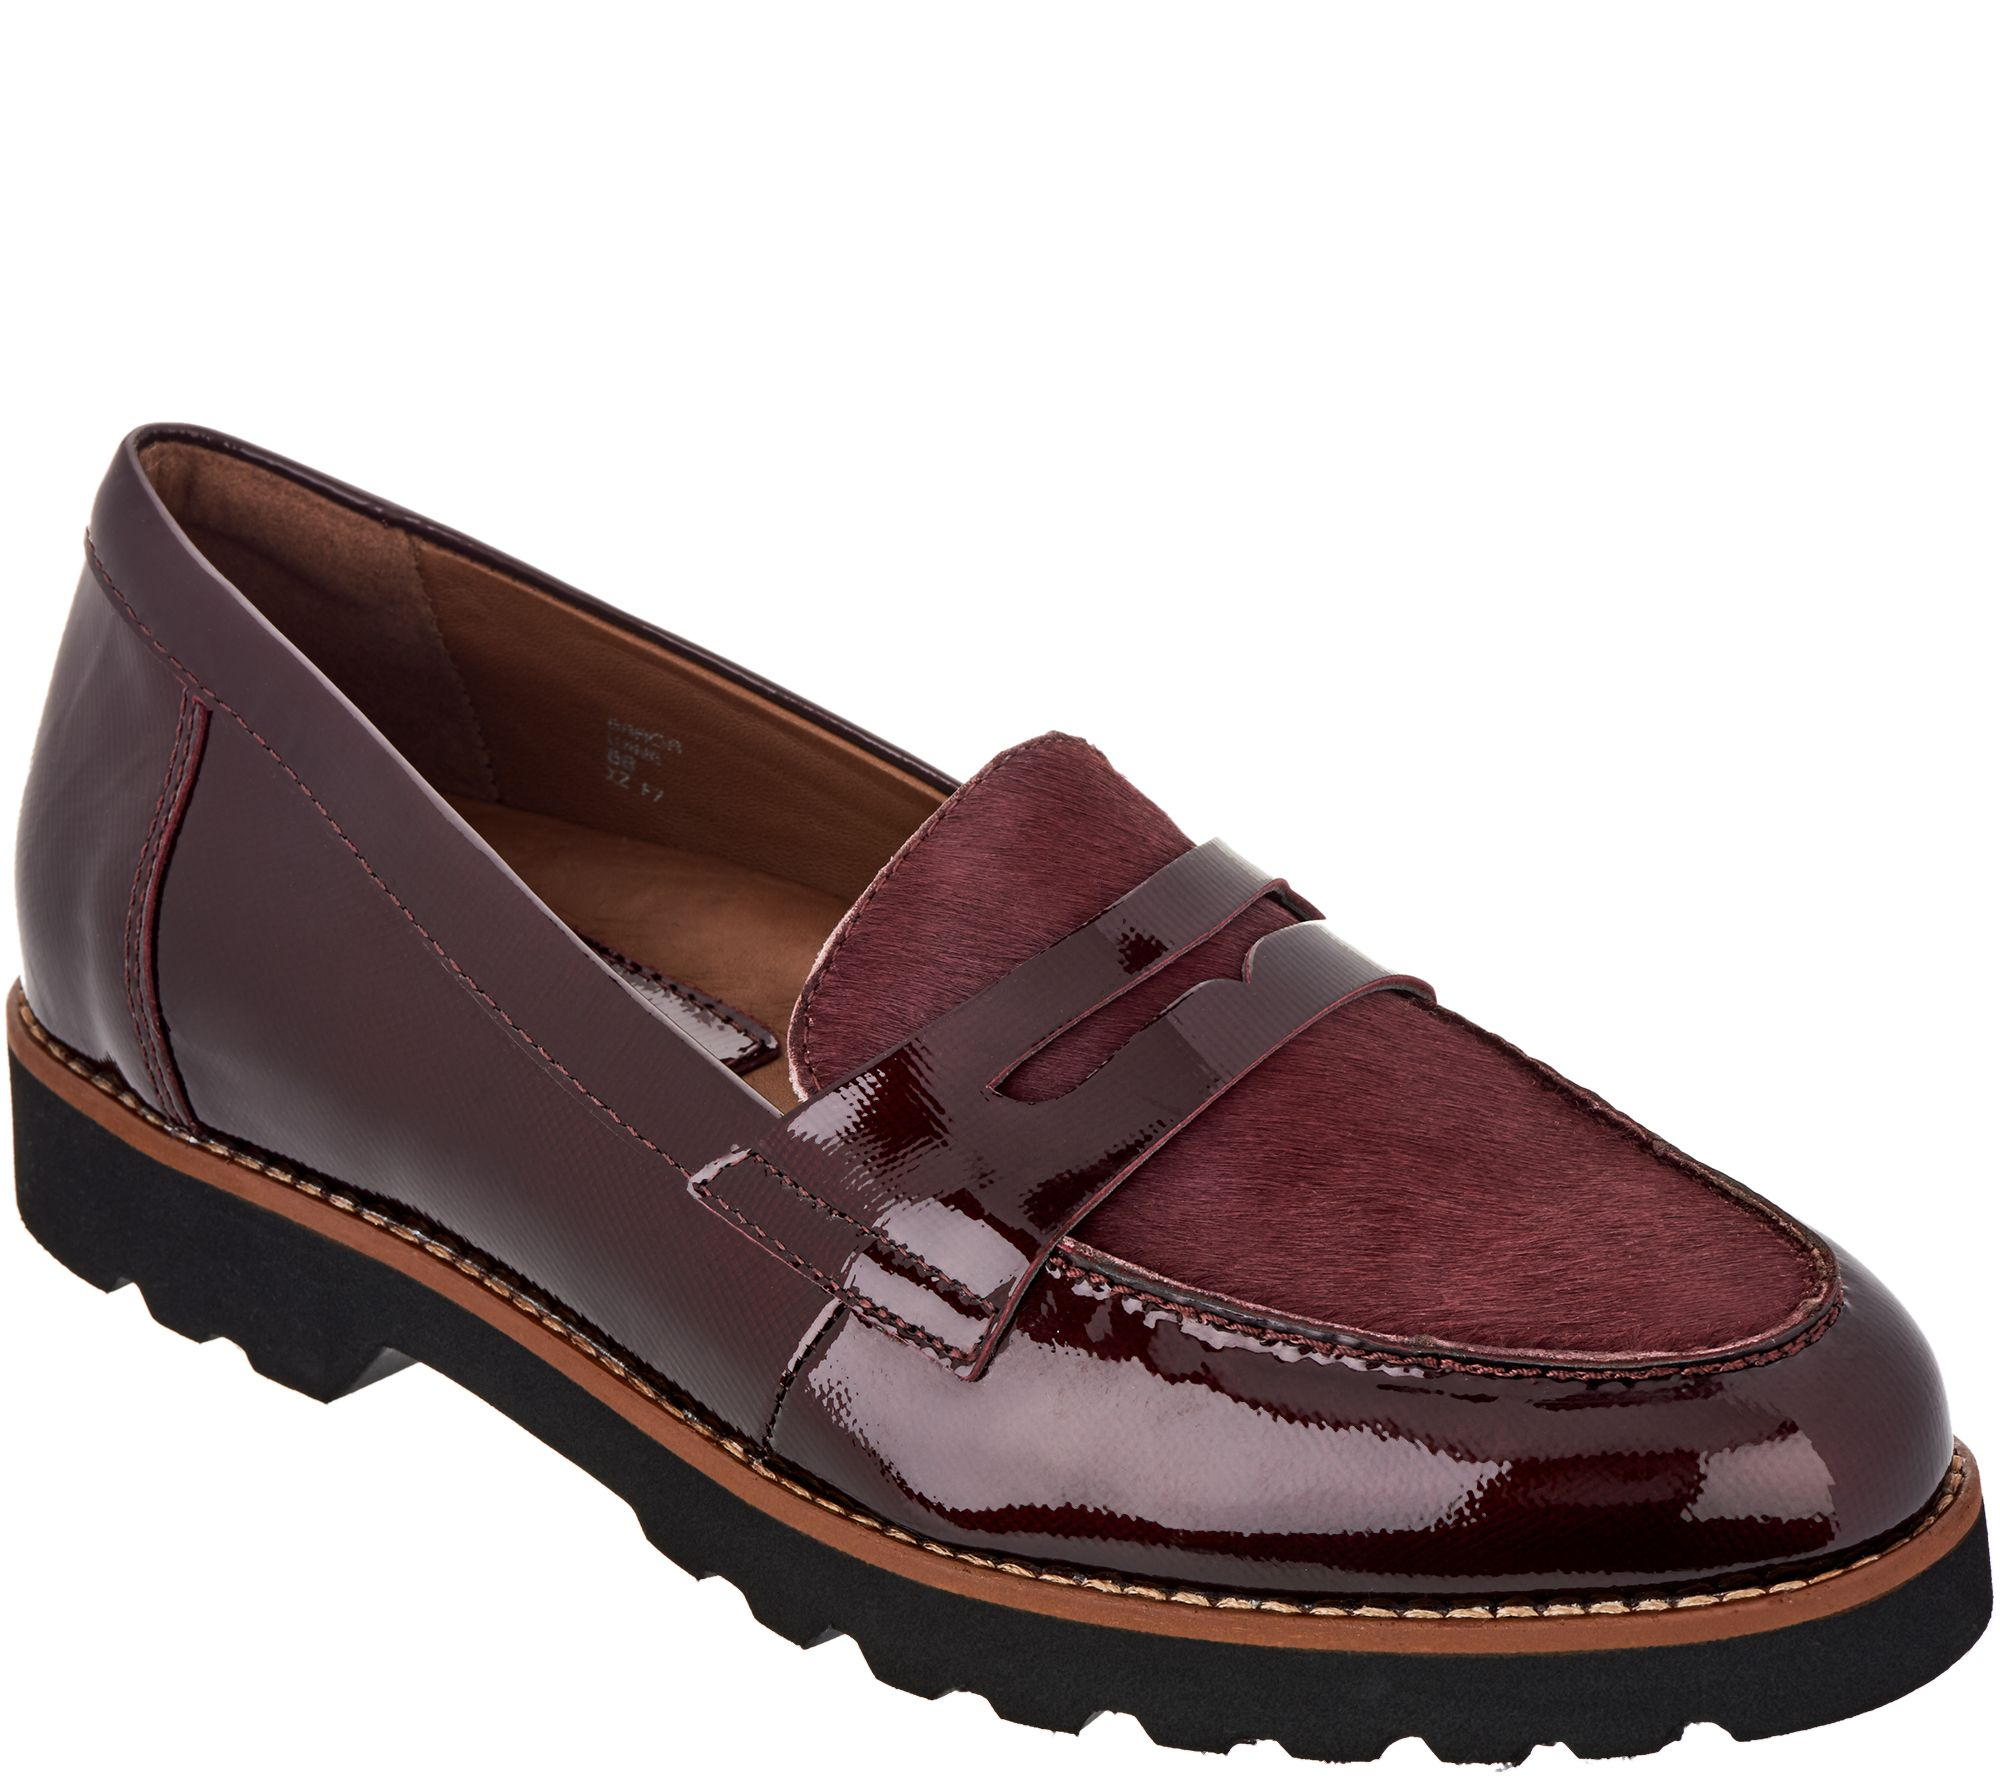 Women's Earthies 'Braga' Loafer 5143138 shoes 2016 winter online sales